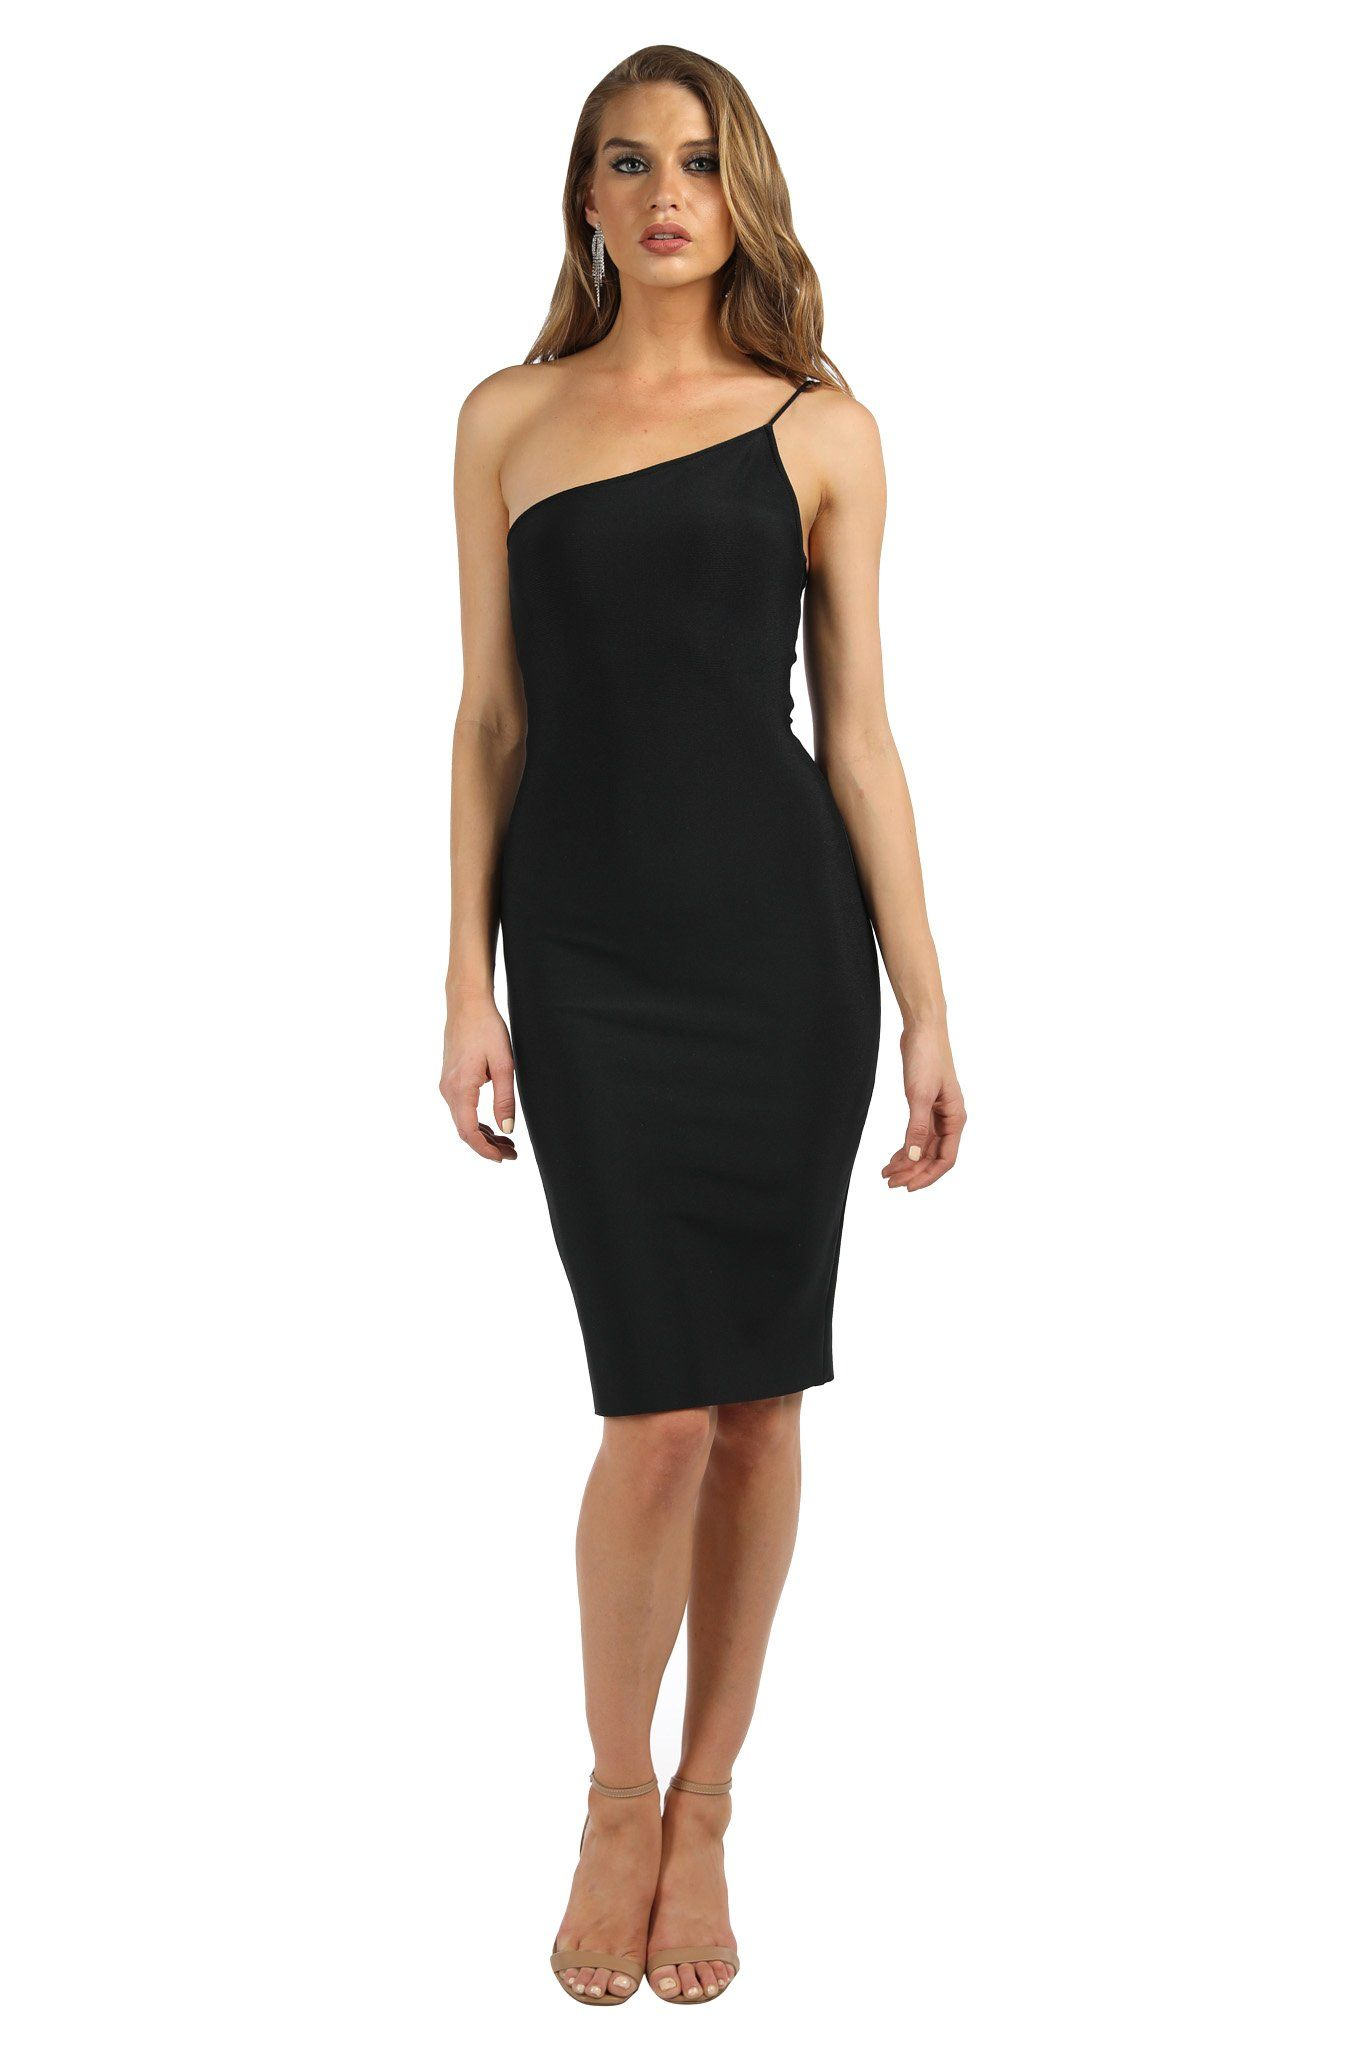 Black sleeveless below knee length tight fitted bandage dress with one shoulder thin strap